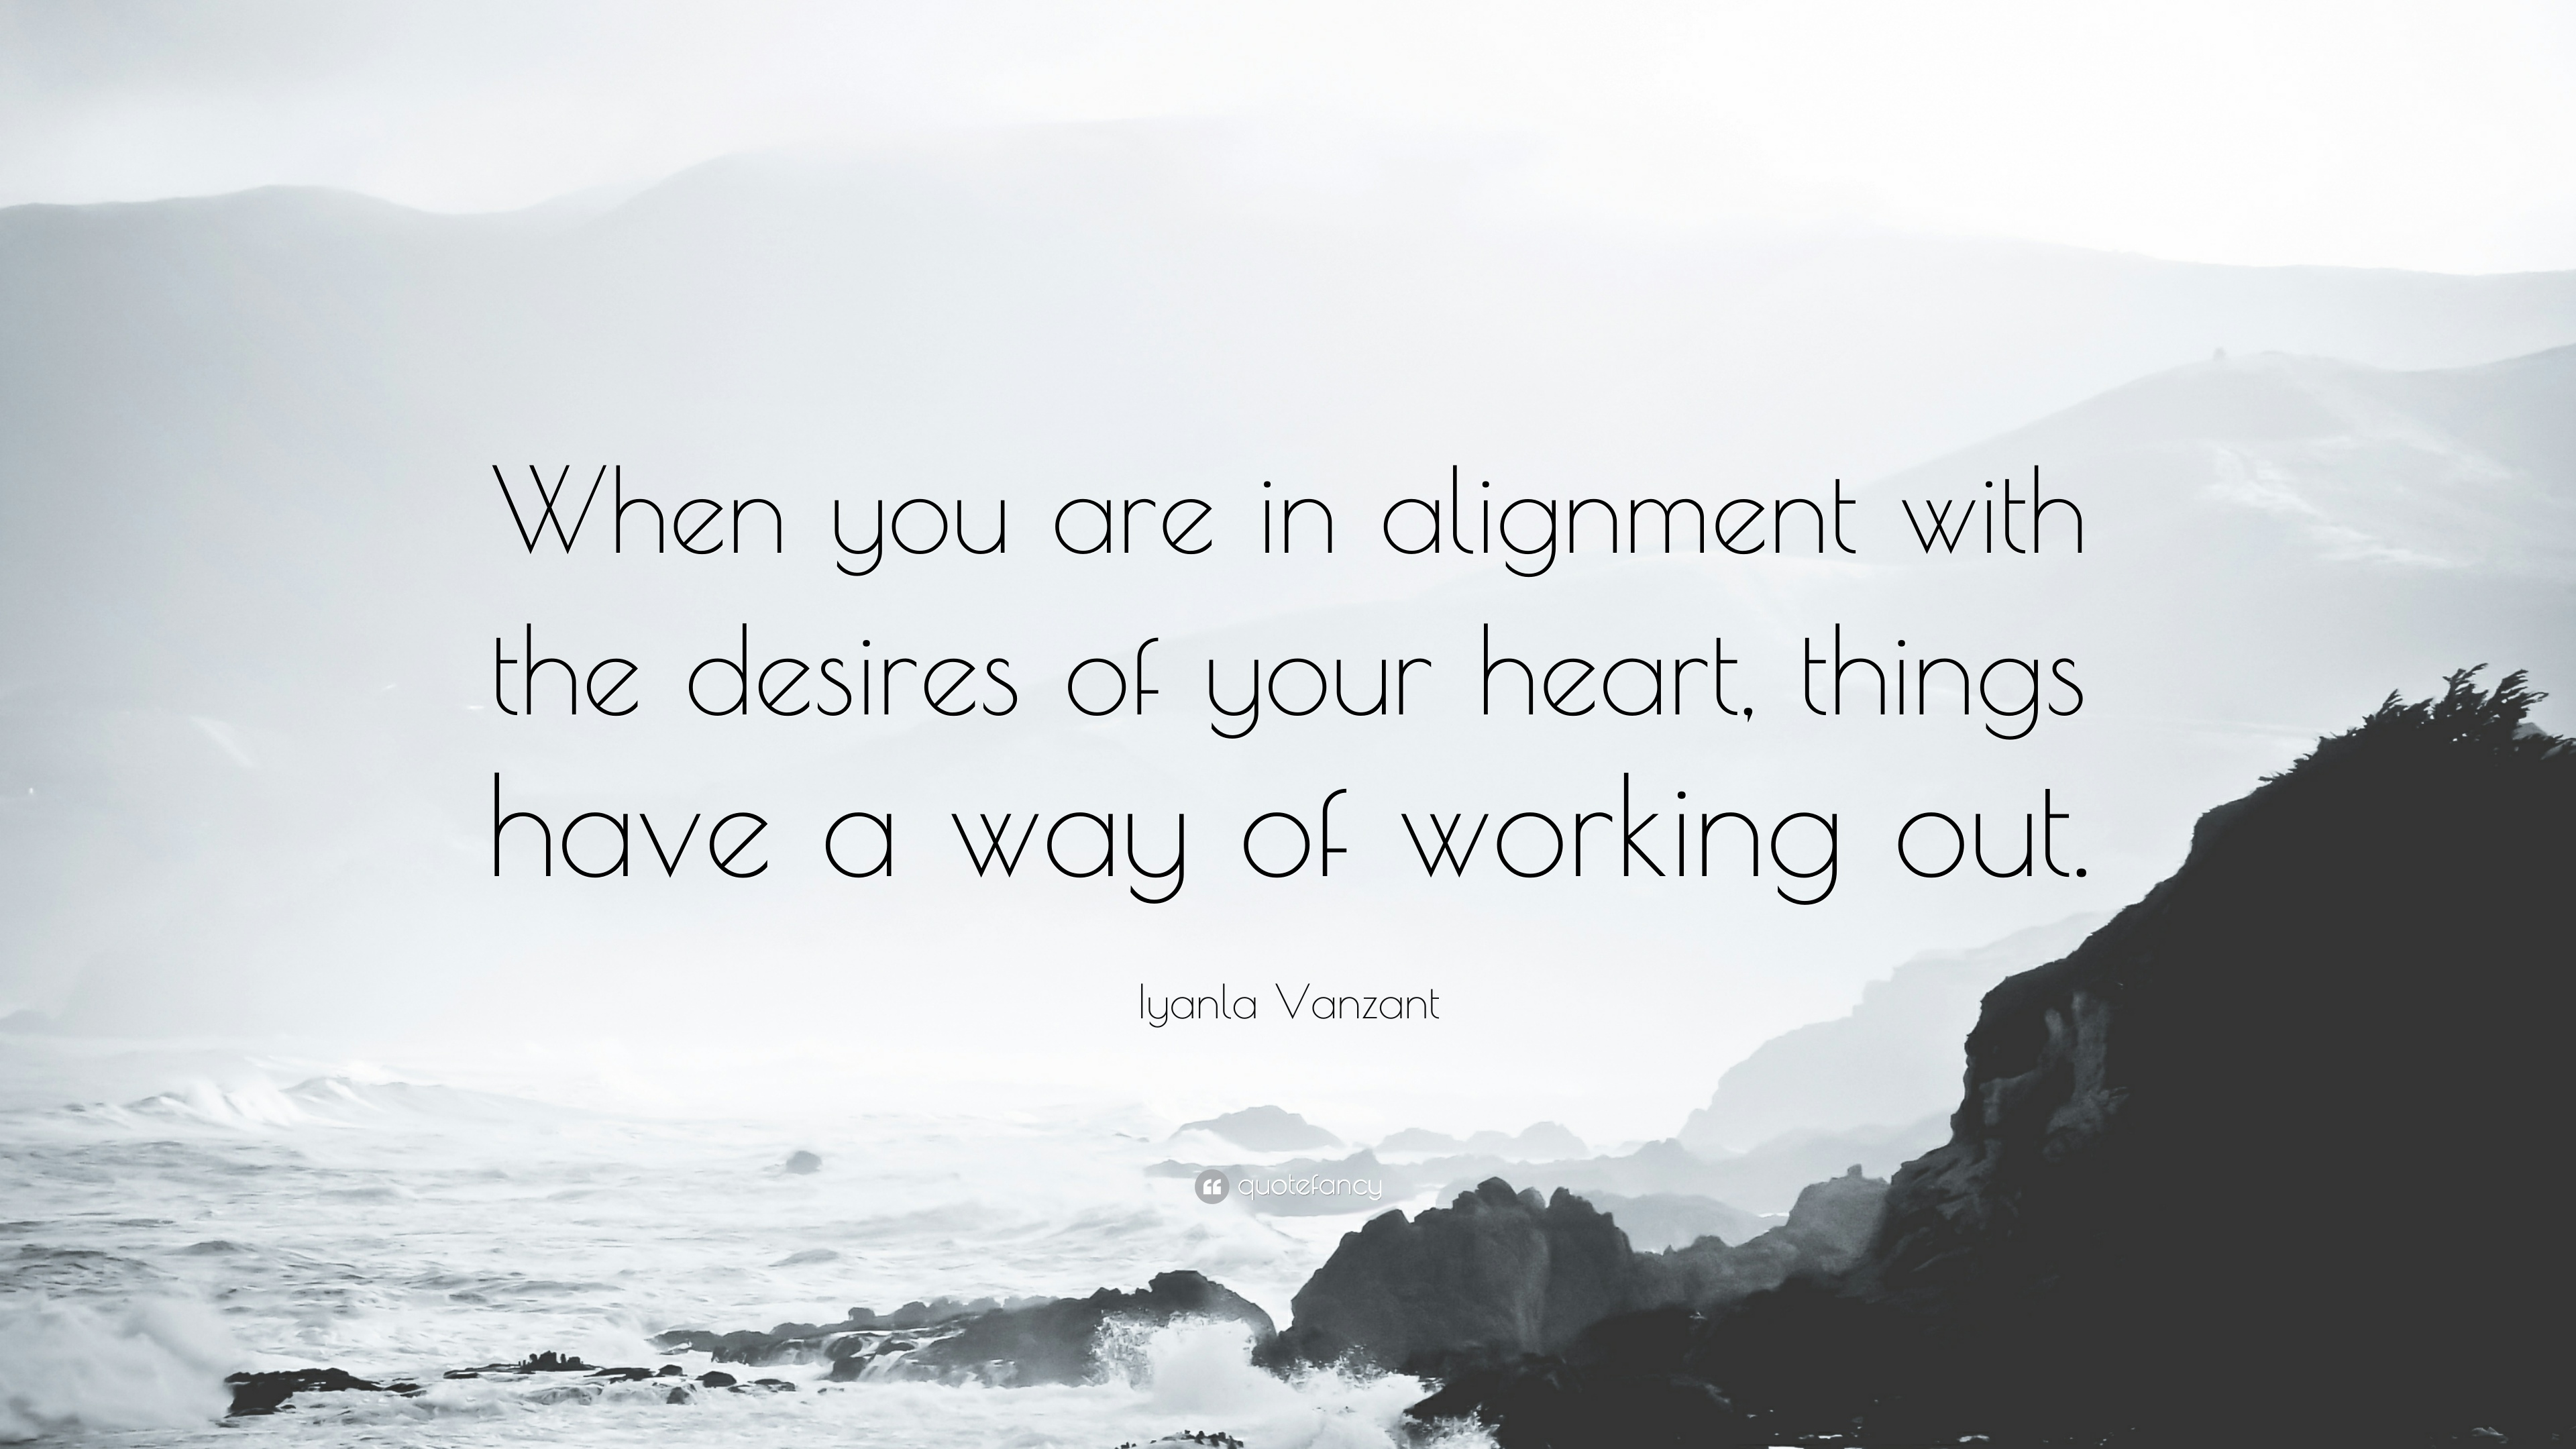 Iyanla Vanzant Quote When You Are In Alignment With The Desires Of